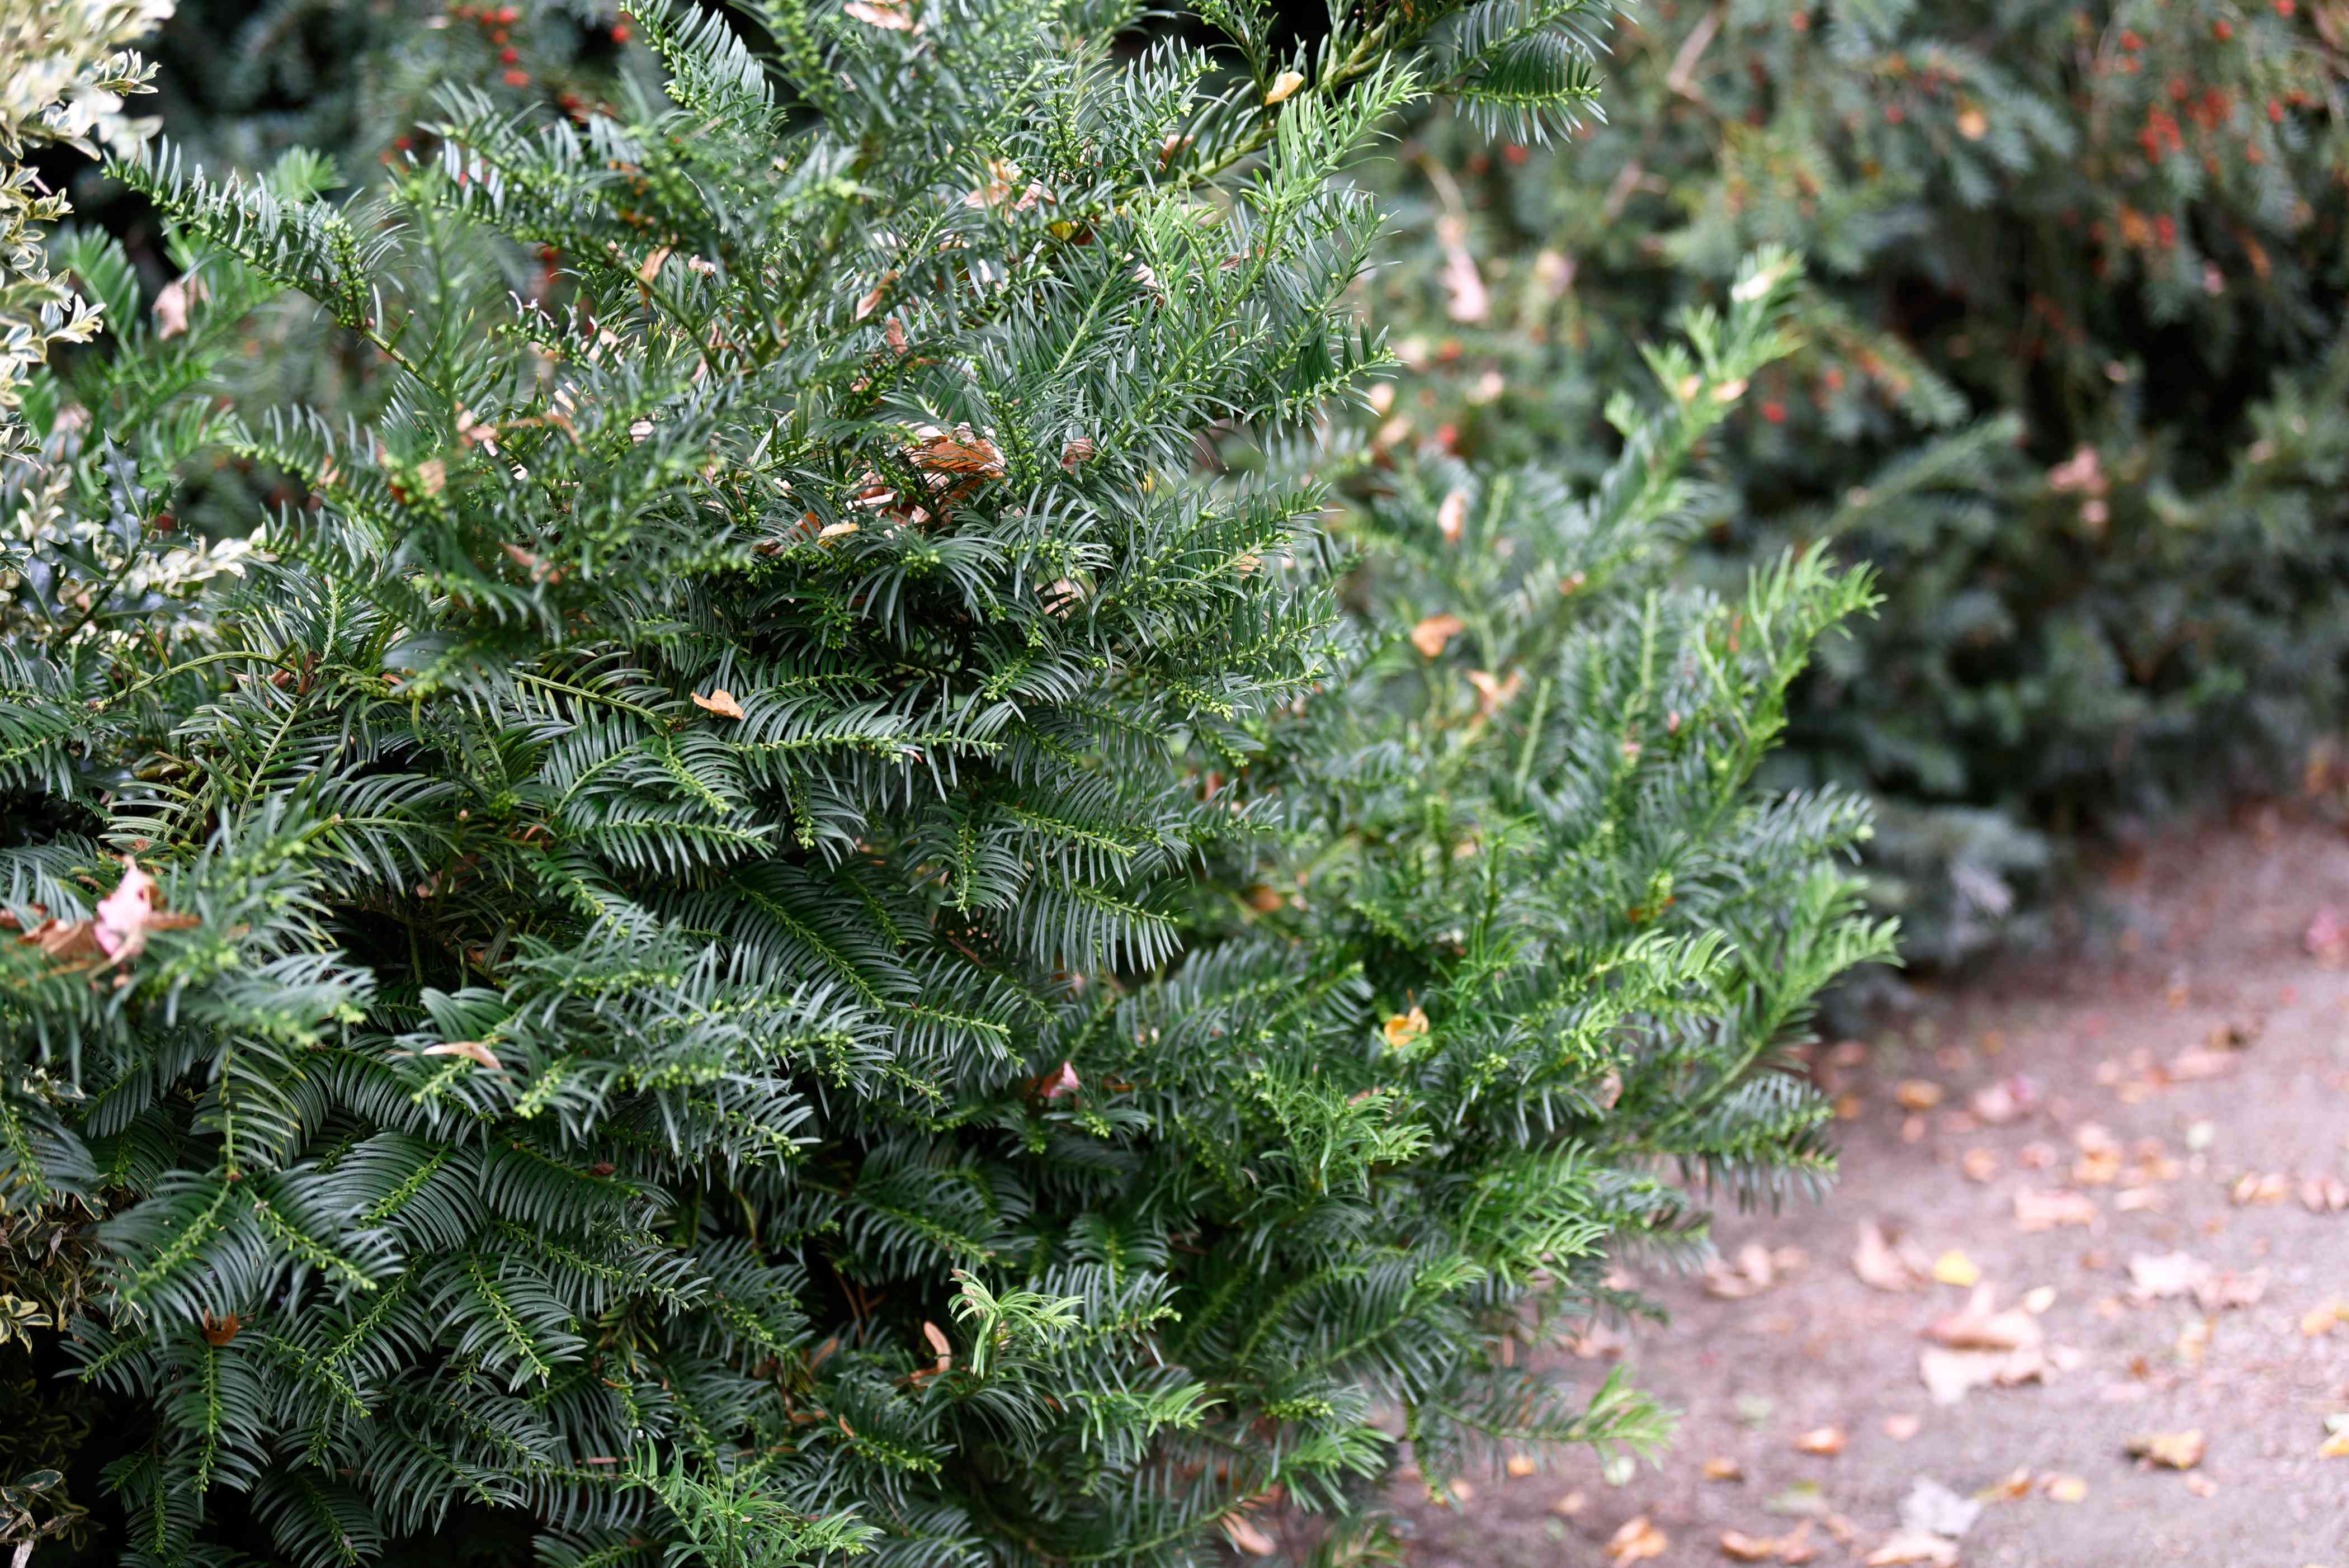 Japanese plum yew shrub with needled leaves on branches covered with brown fallen leaves